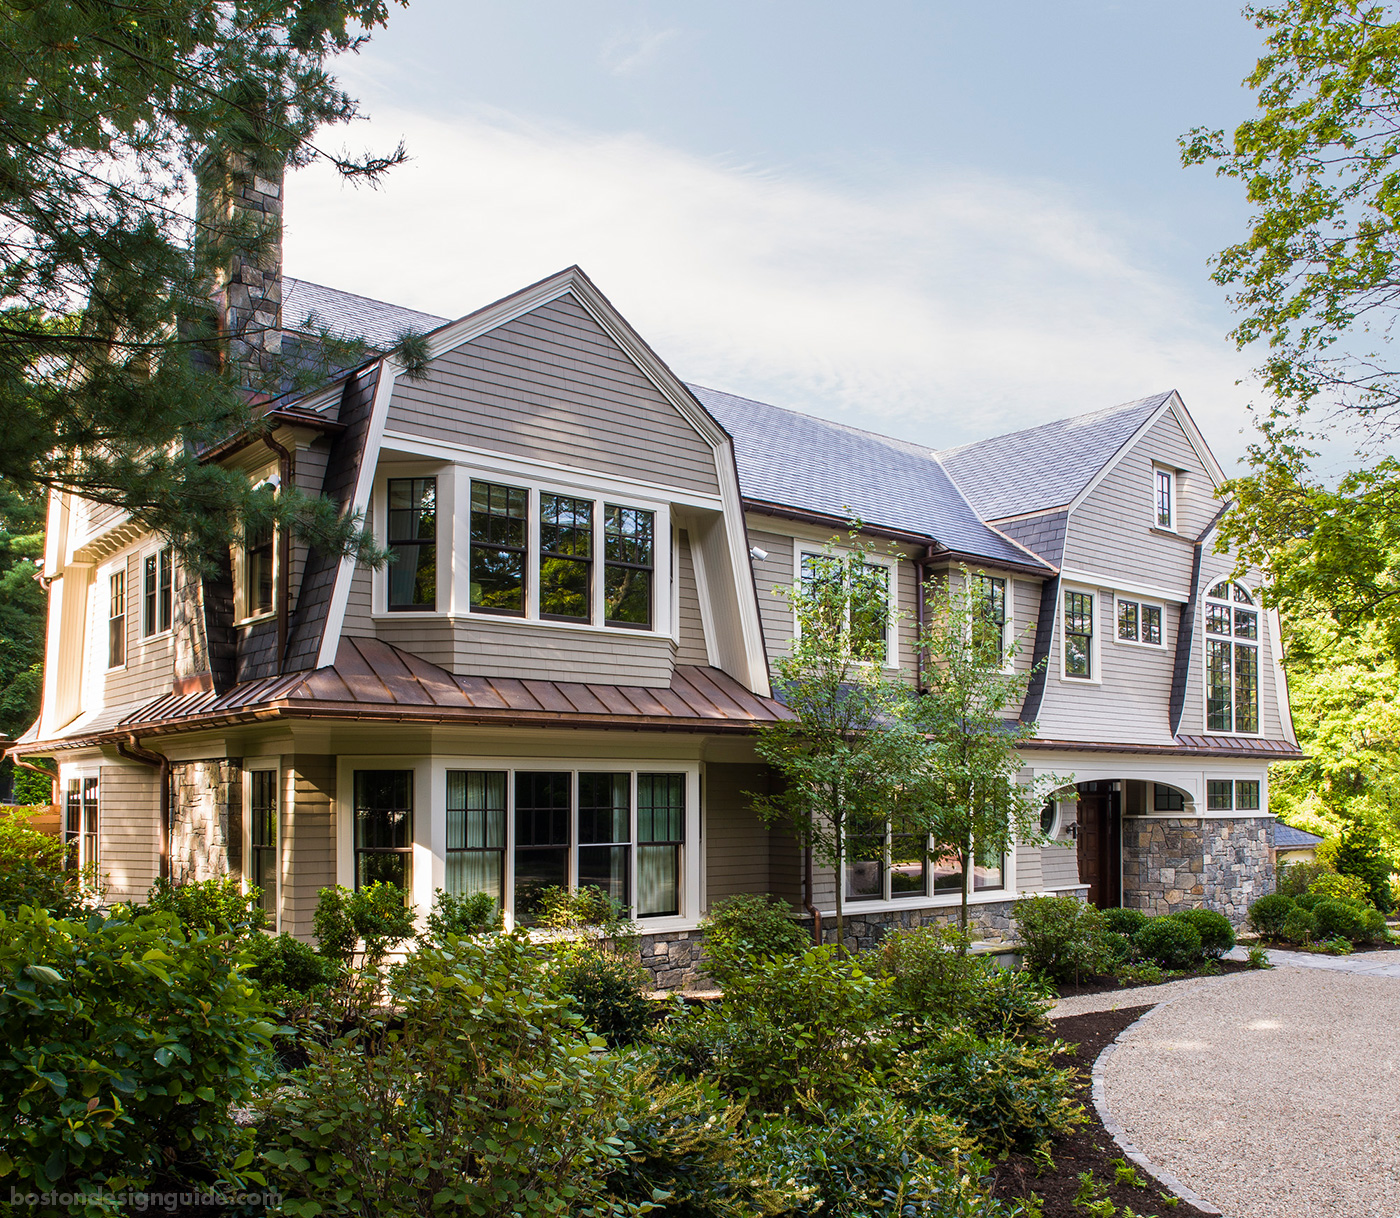 High-end homes near the Boston Marathon route